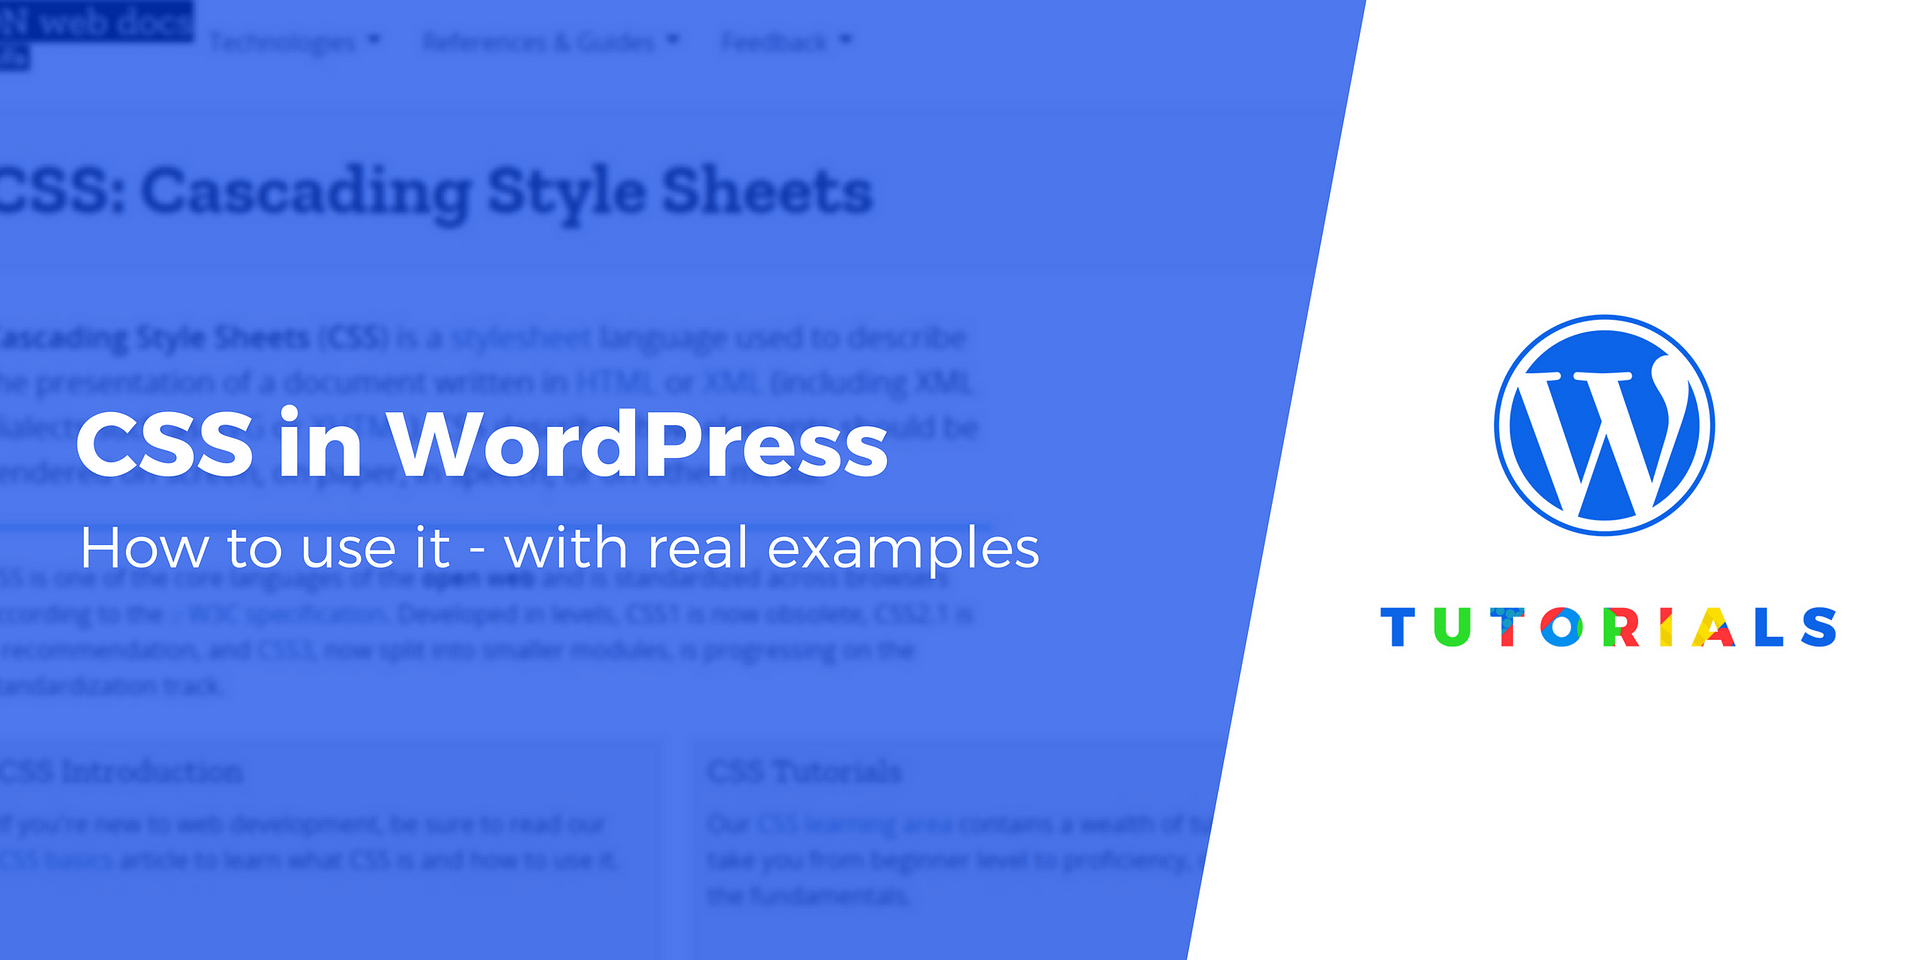 Beginner's Guide: How to Use CSS in WordPress for Easy Style Tweaks